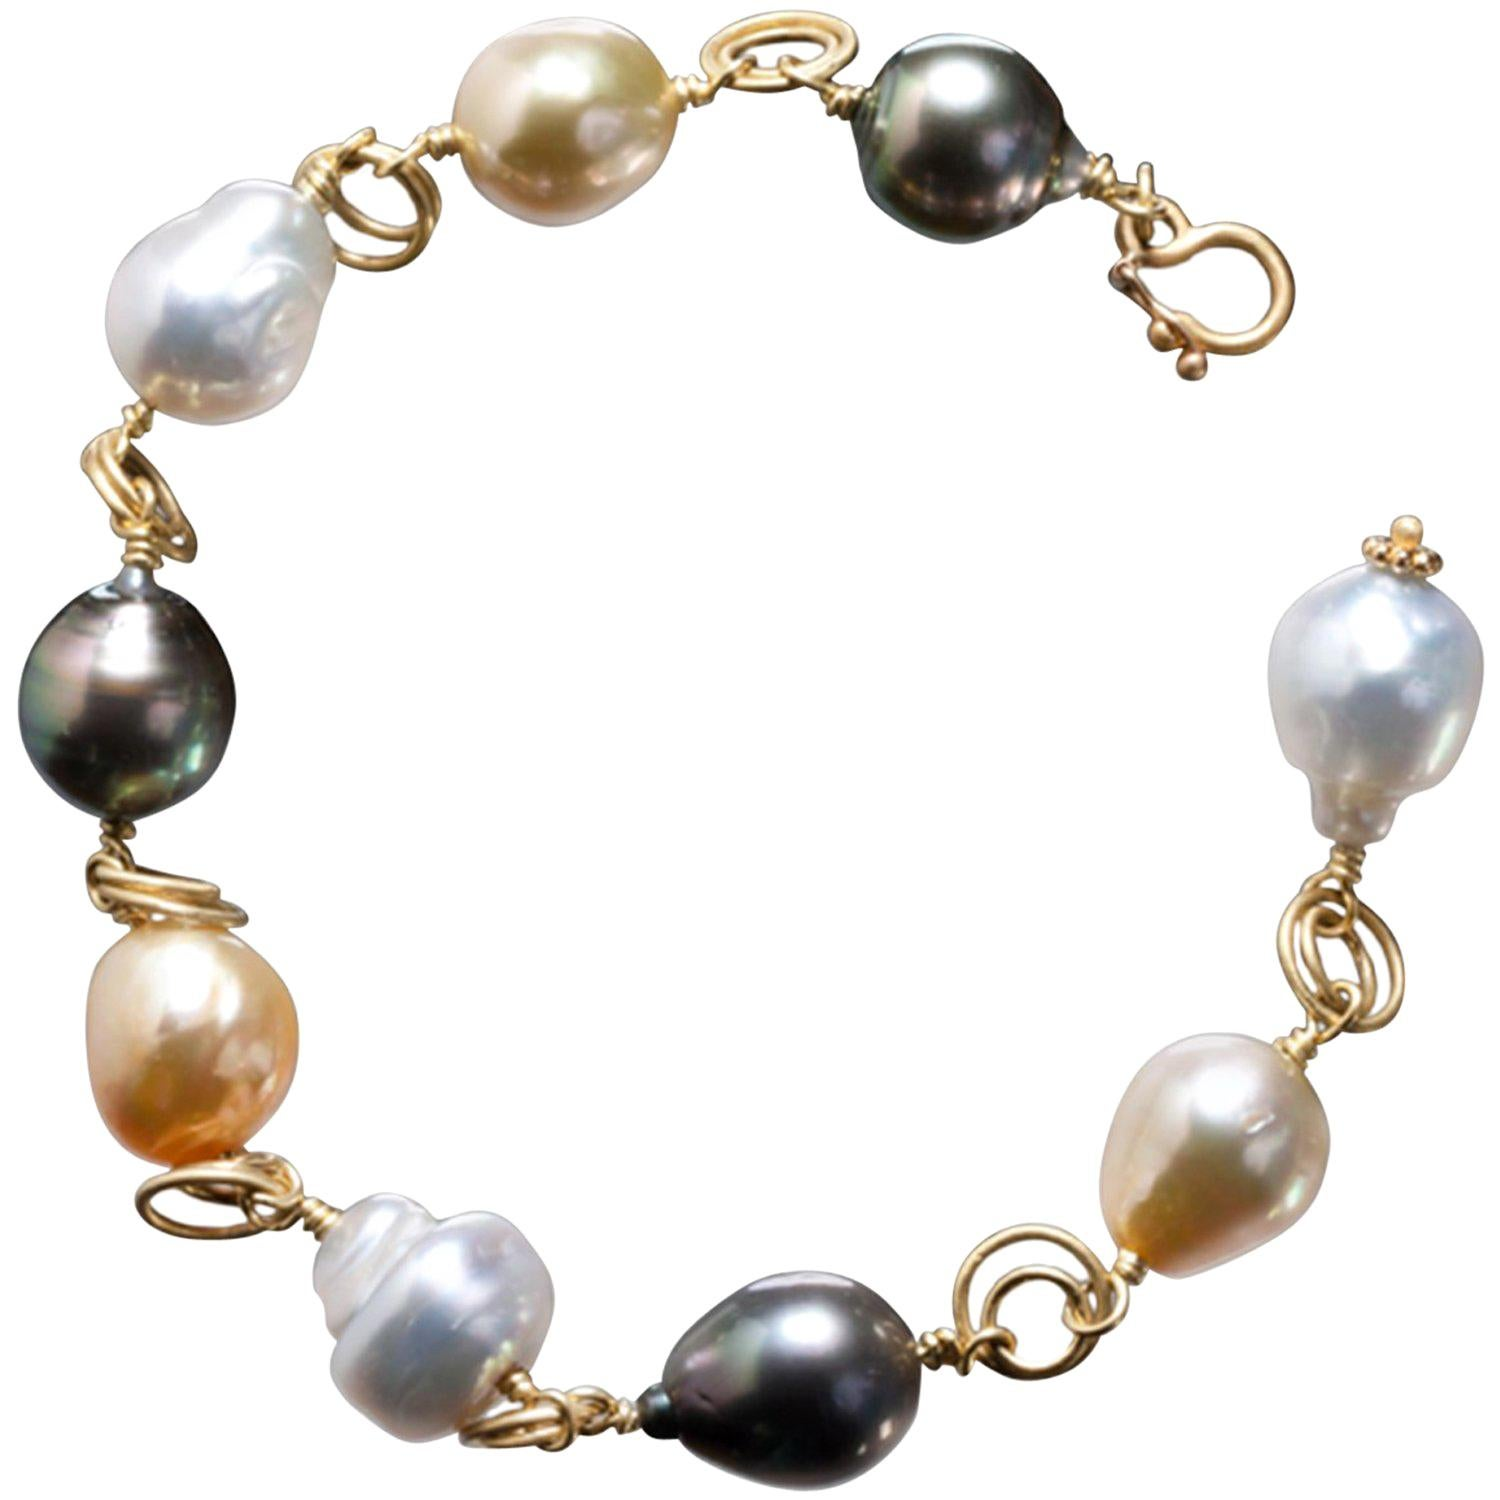 Faye Kim 18 Karat Gold Multi-Color South Sea Pearl Gold Link Bracelet